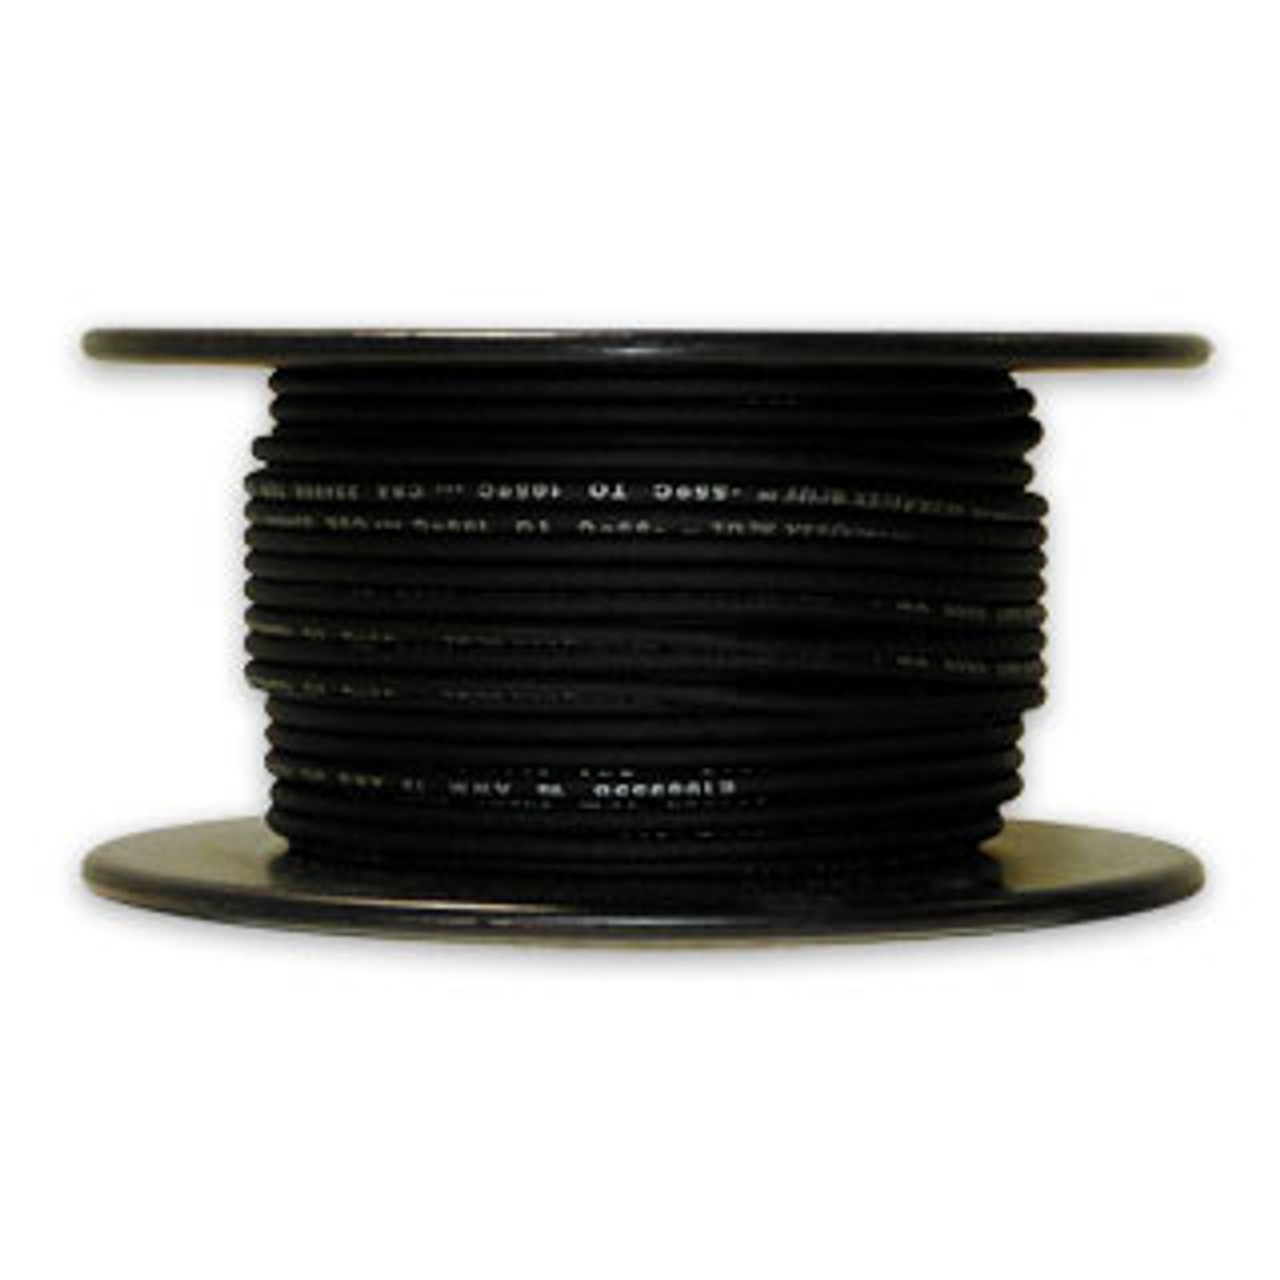 Arctic Ultraflex Cold Weather Flexible Wire 100 Foot Spool 14AWG Black